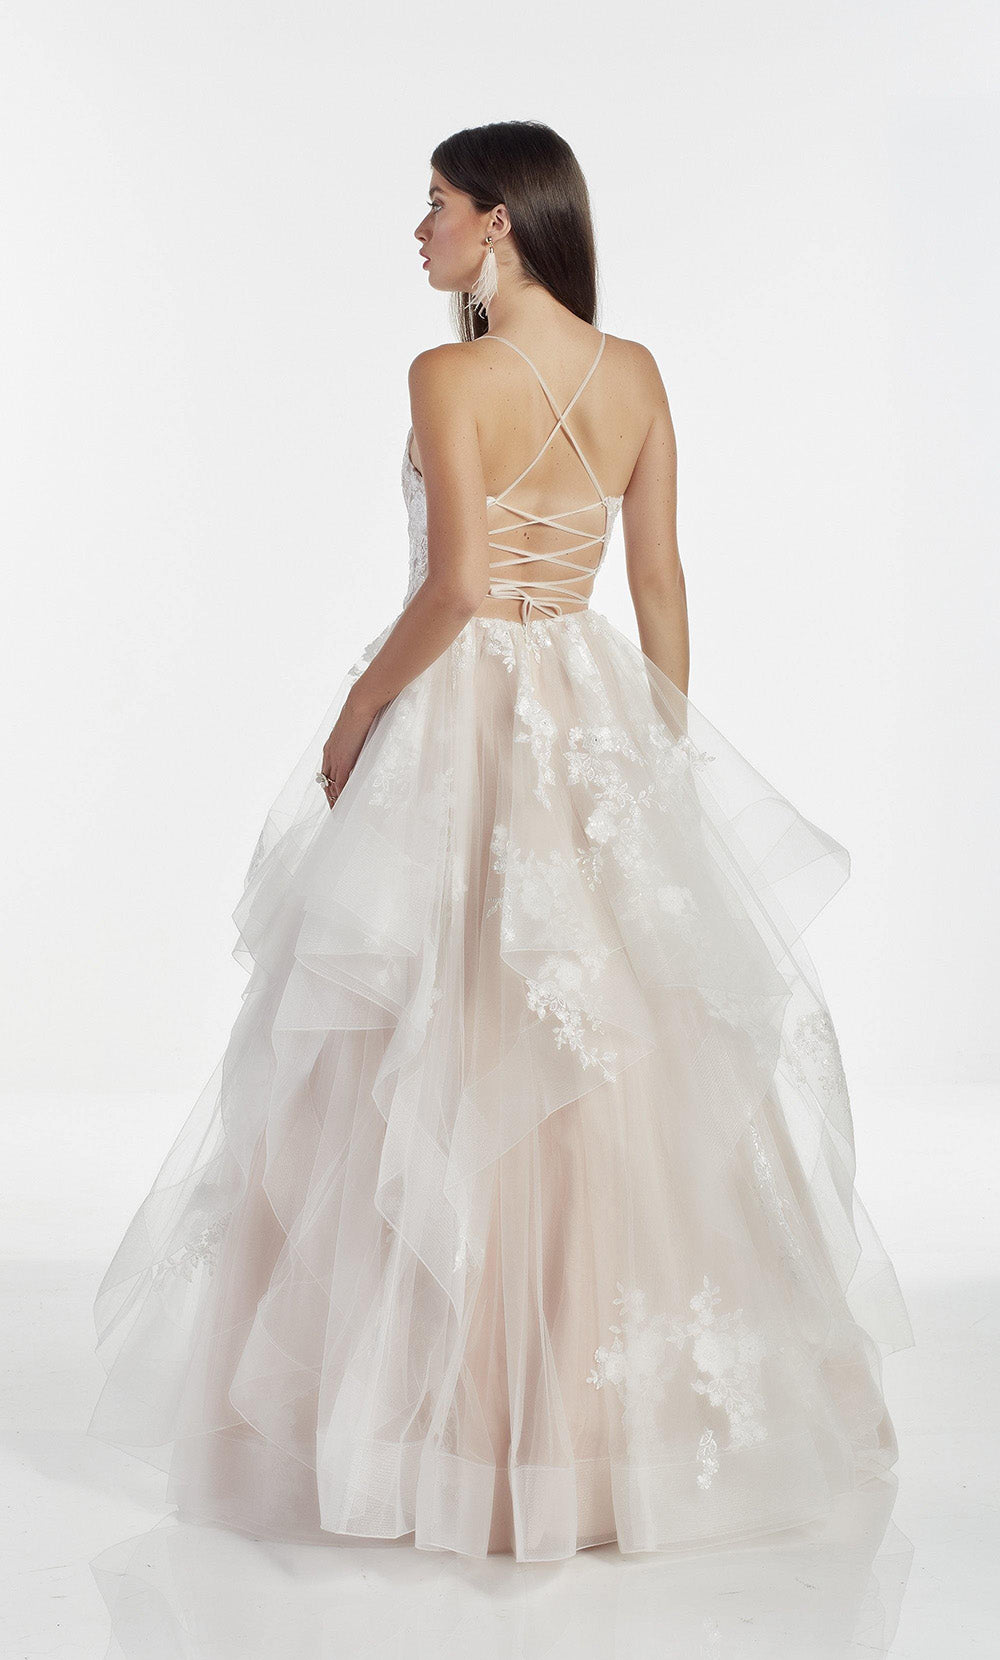 Diamond White-Rose layered ballgown with a strappy back and delicate floral embroidery